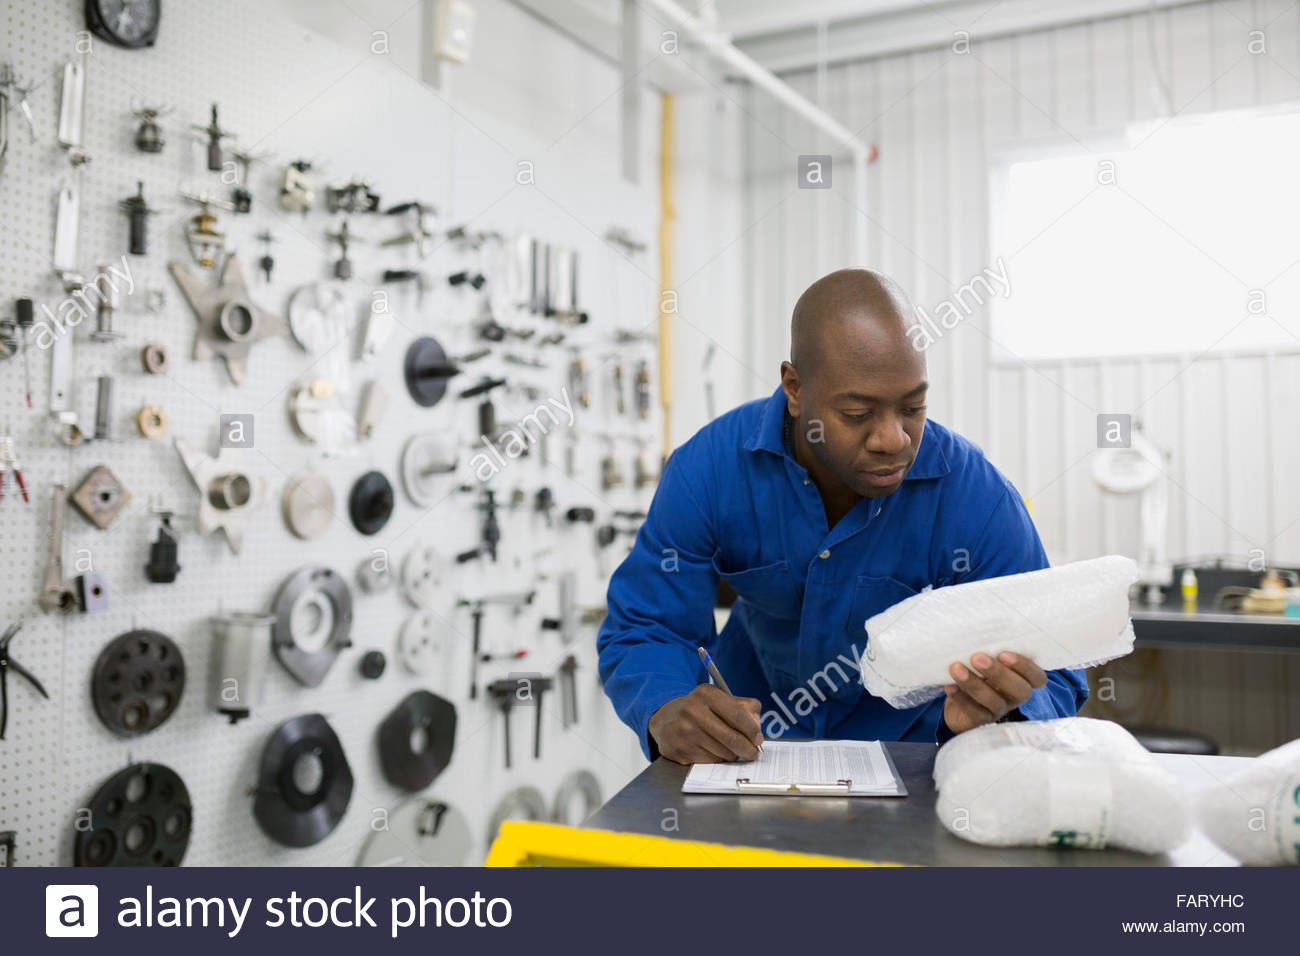 Helicopter mechanic with clipboard examining part - Stock Image